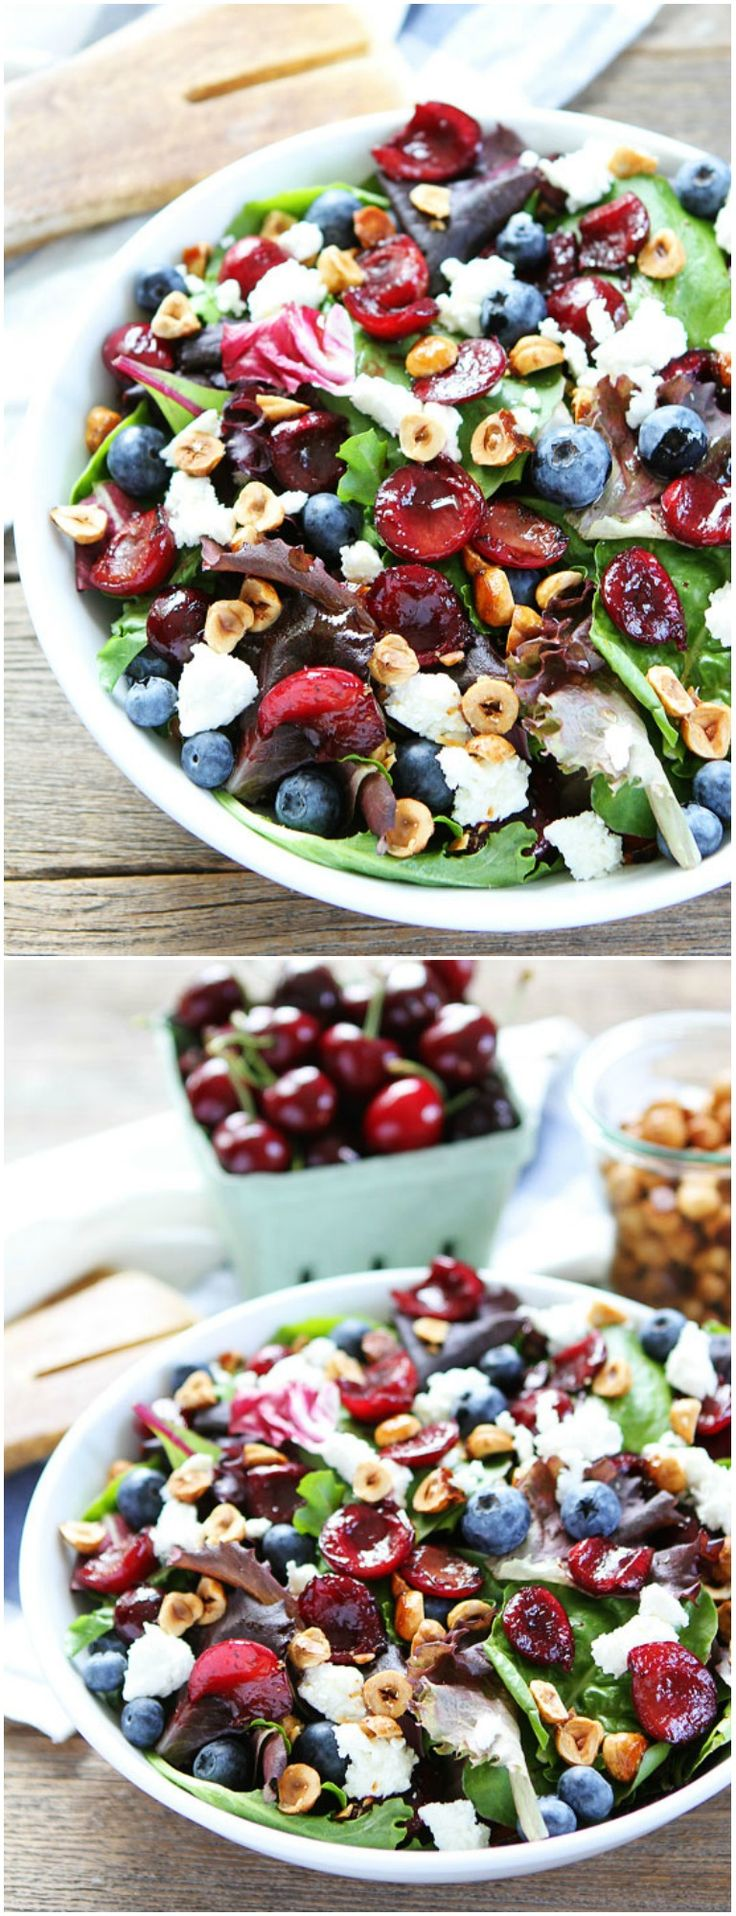 Yum. Balsamic Grilled Cherry, Blueberry, Goat Cheese & Candied Hazelnut Salad from @twopeasandpod.